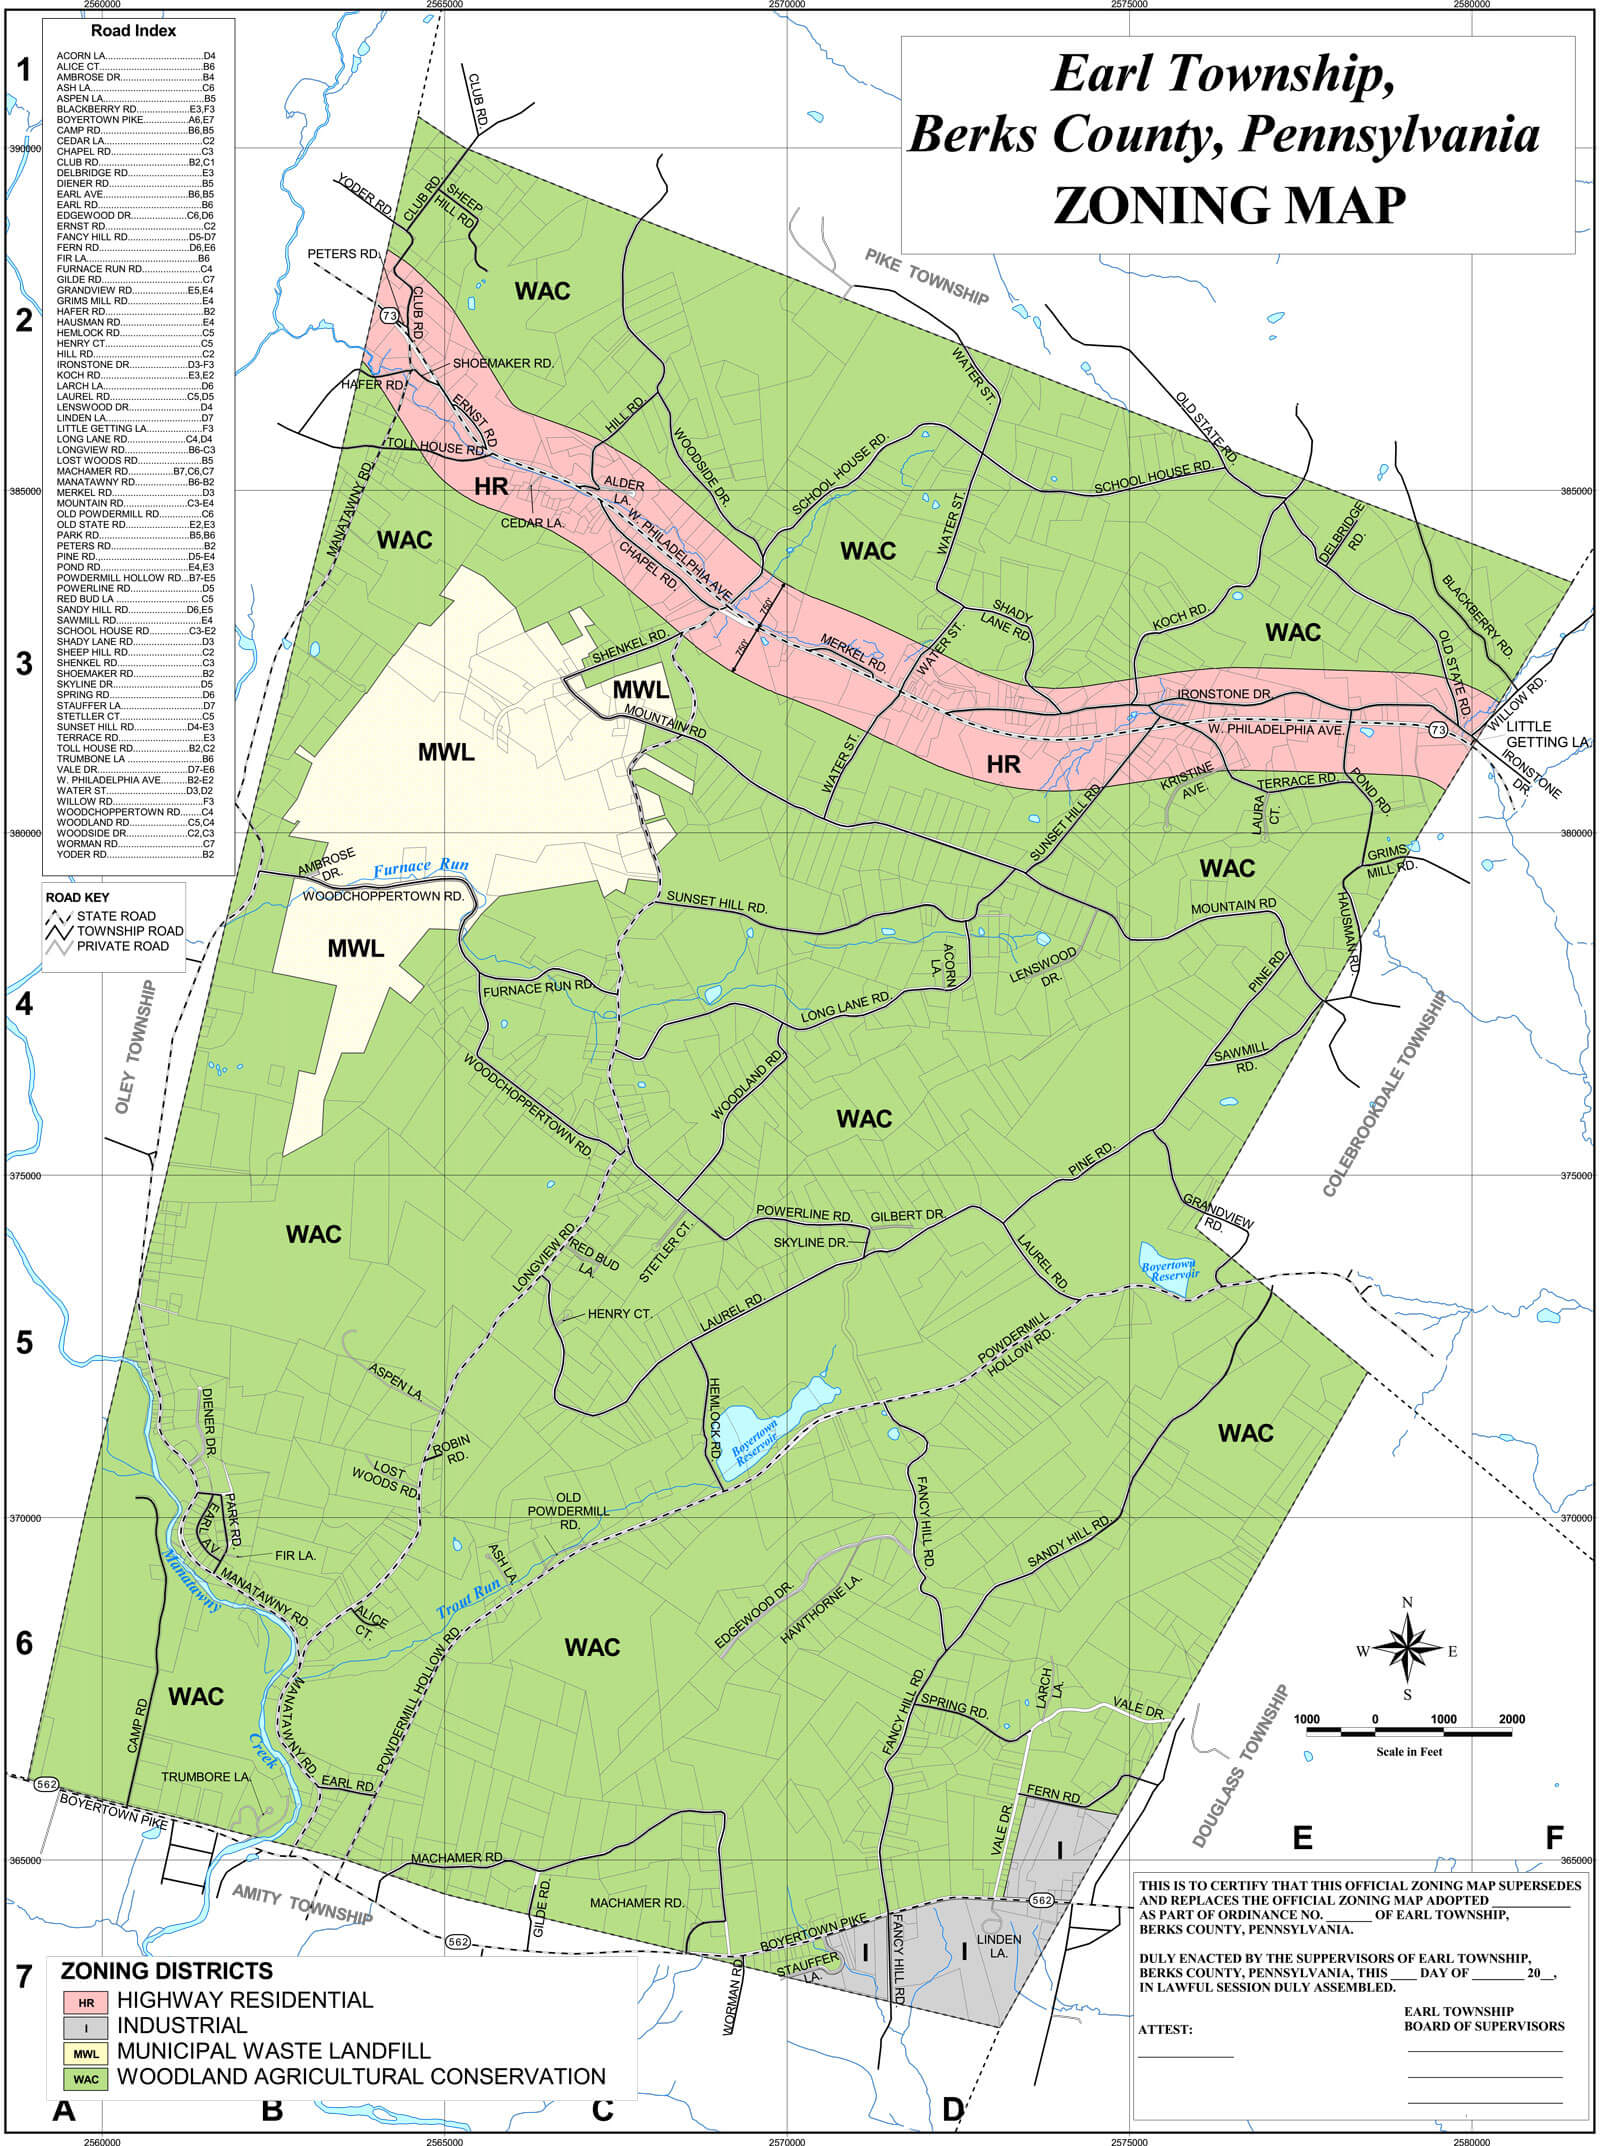 EARL TOWNSHIP ZONING MAP